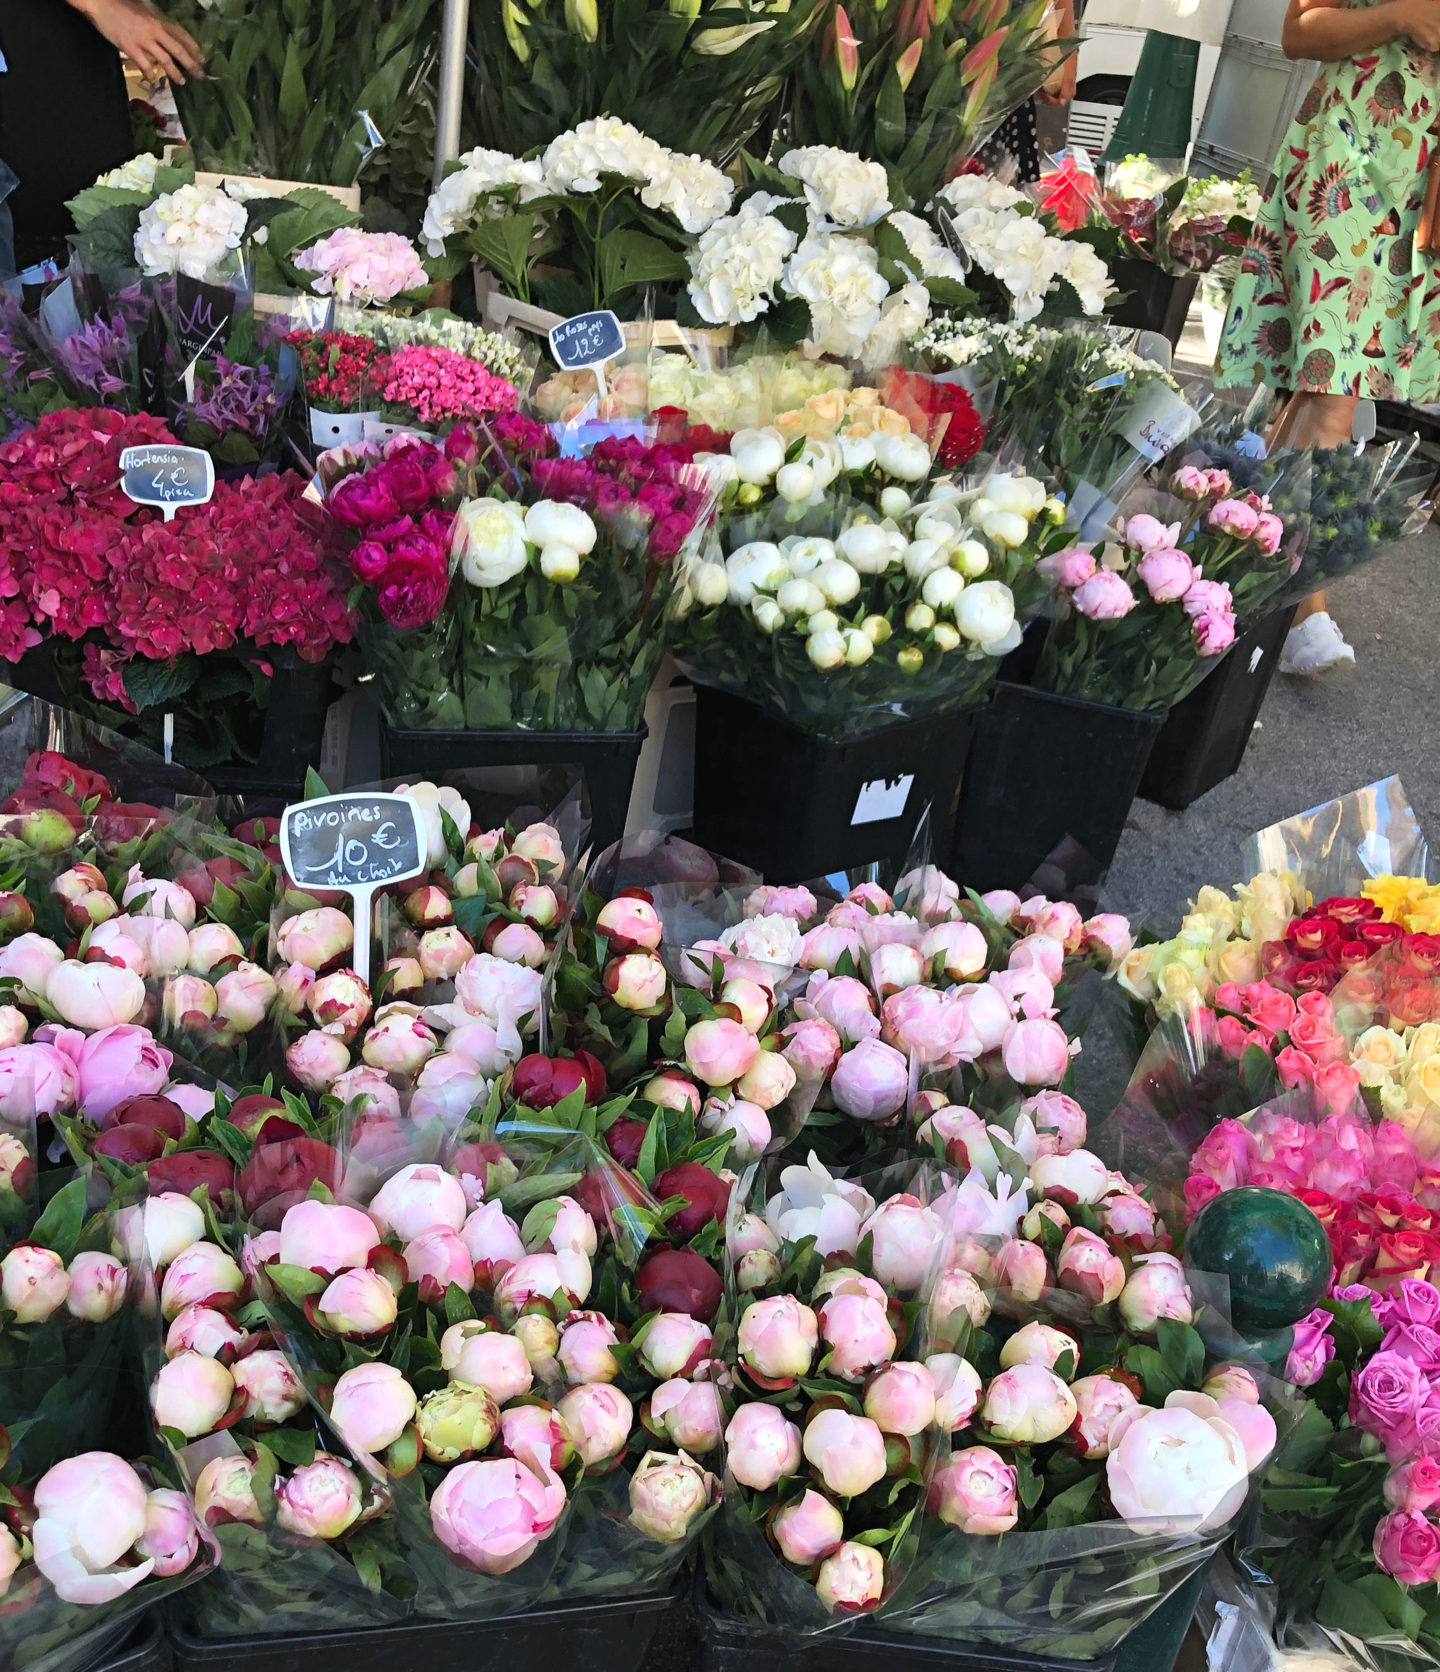 Flowers in St. Tropez market